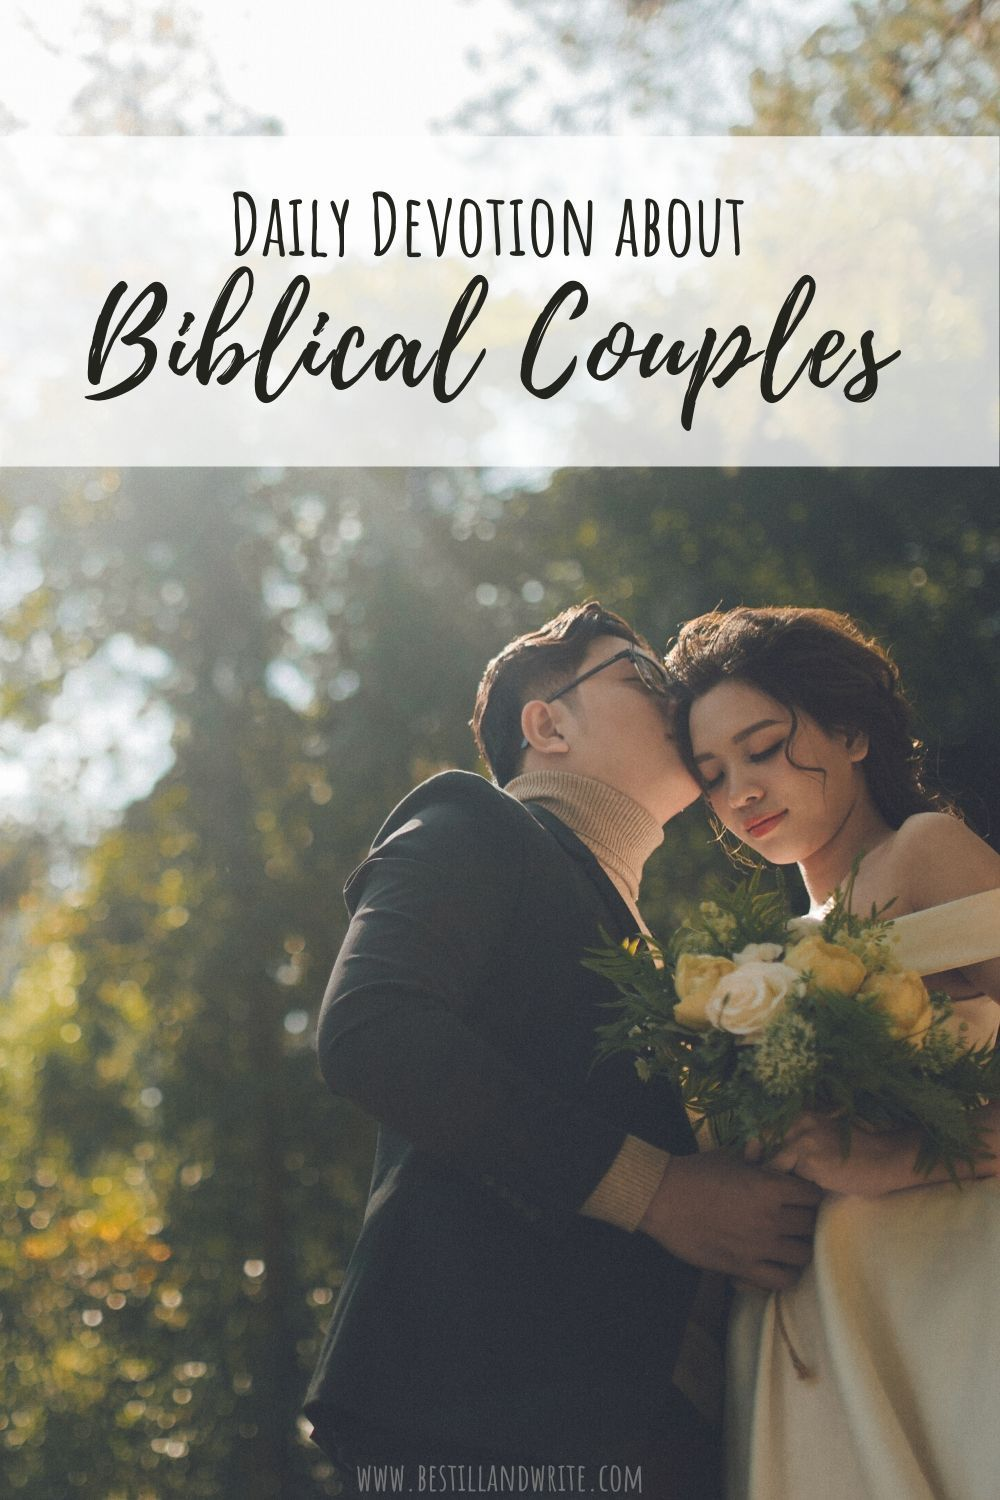 7 Day Devotion Series on Couples in the Bible